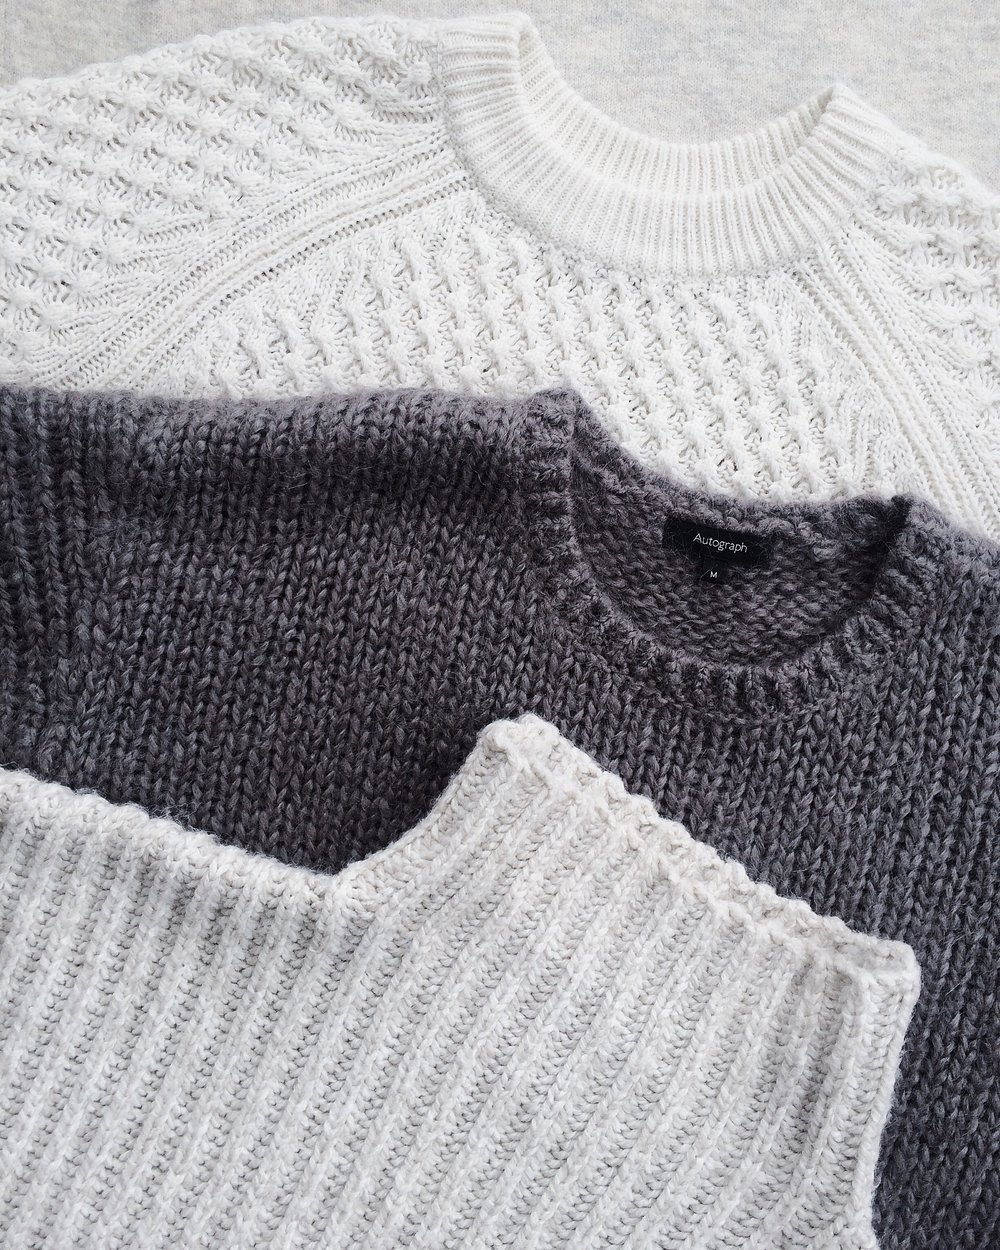 7 Steps to Design a Knitting Pattern — Work Play Knit